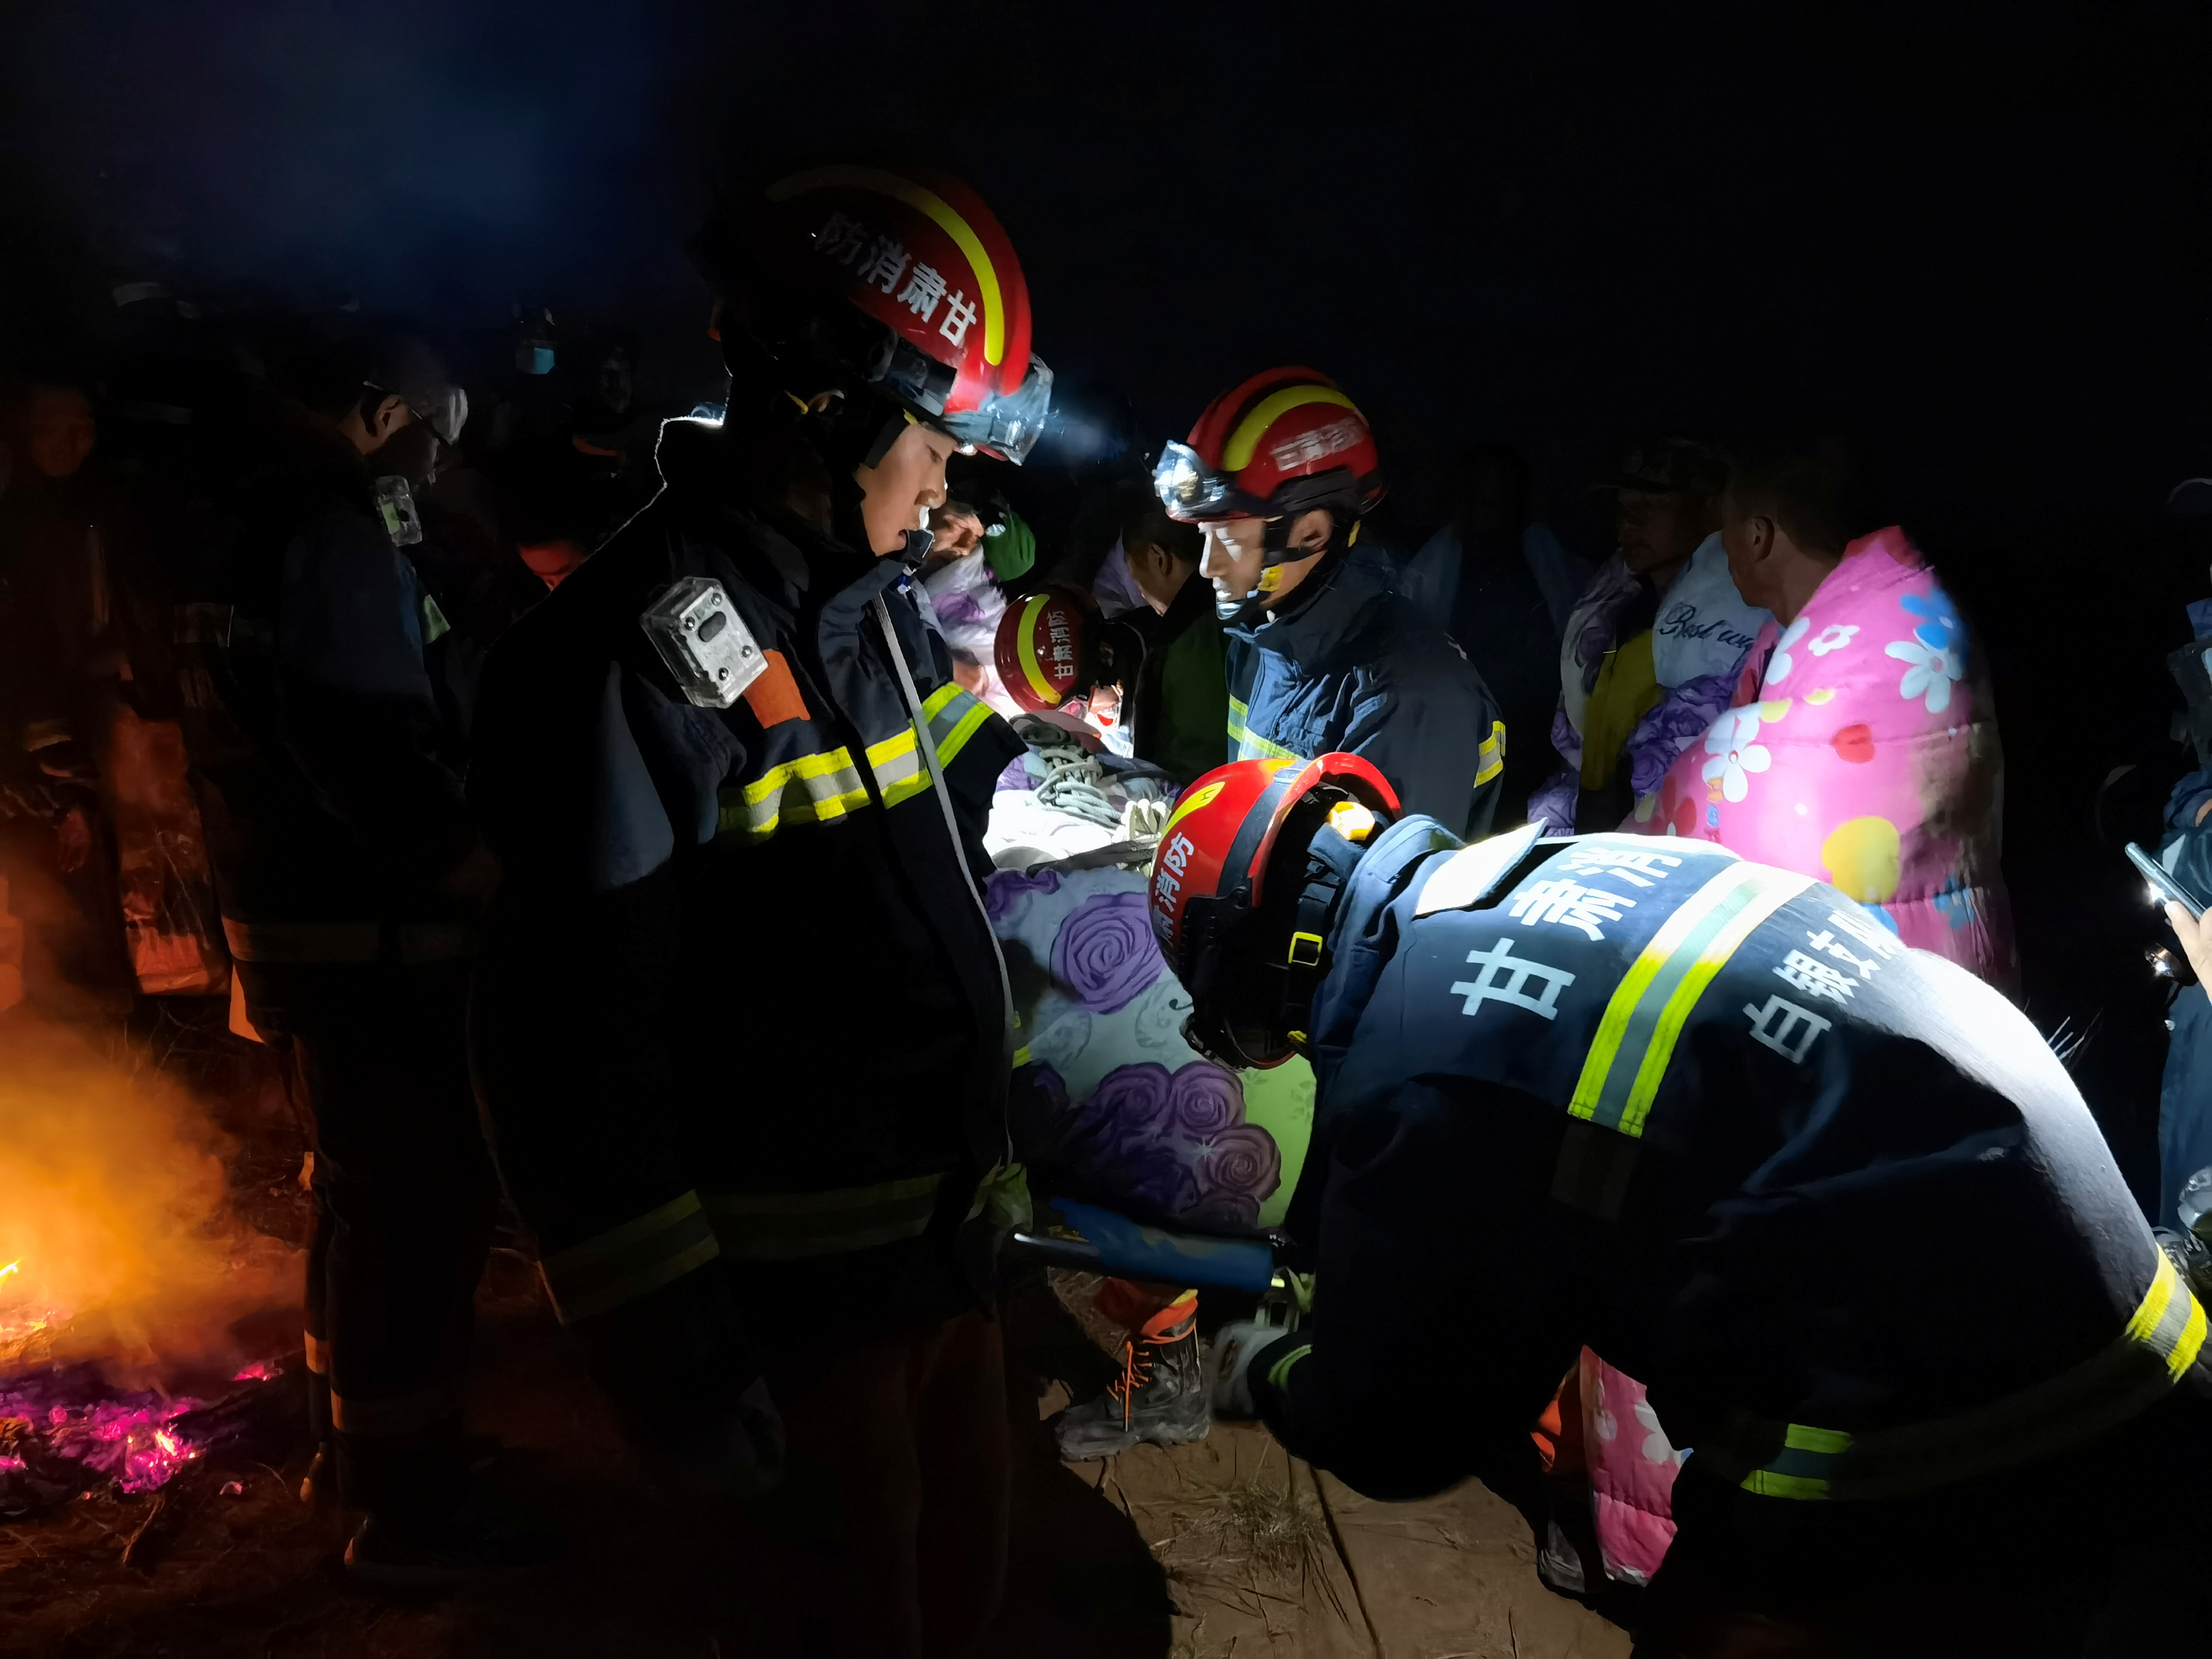 Rescue workers work at the site where extreme cold weather killed participants of an 100-km ultramarathon race in Baiyin, Gansu province, China May 22, 2021. Picture taken May 22, 2021. cnsphoto via REUTERS